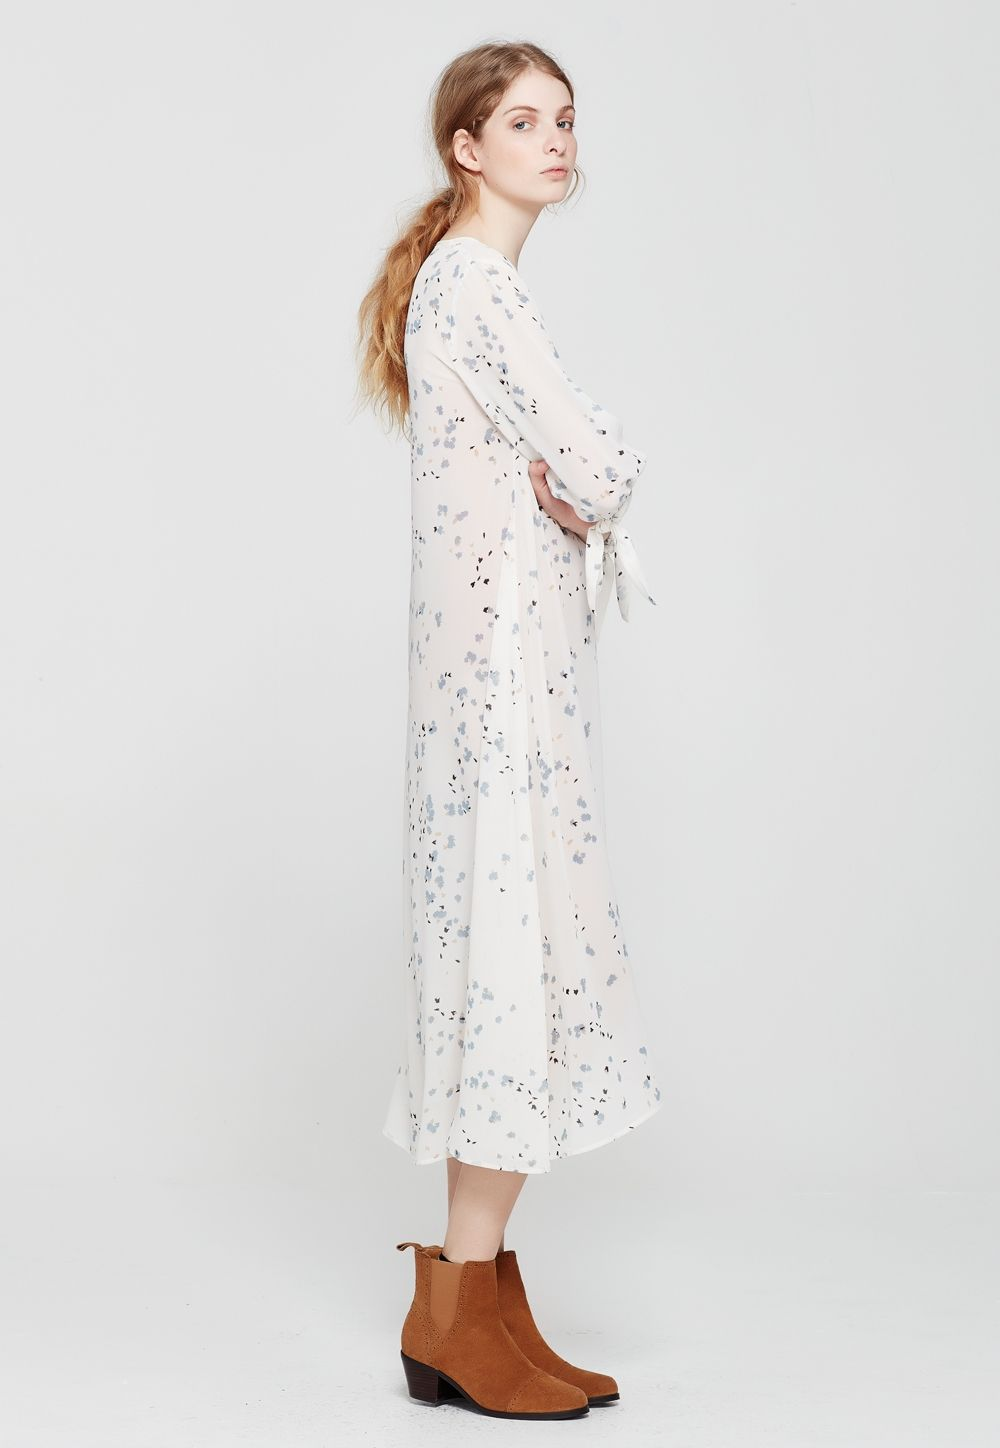 The Flicker dress by Sylvester is an easy style in a shift